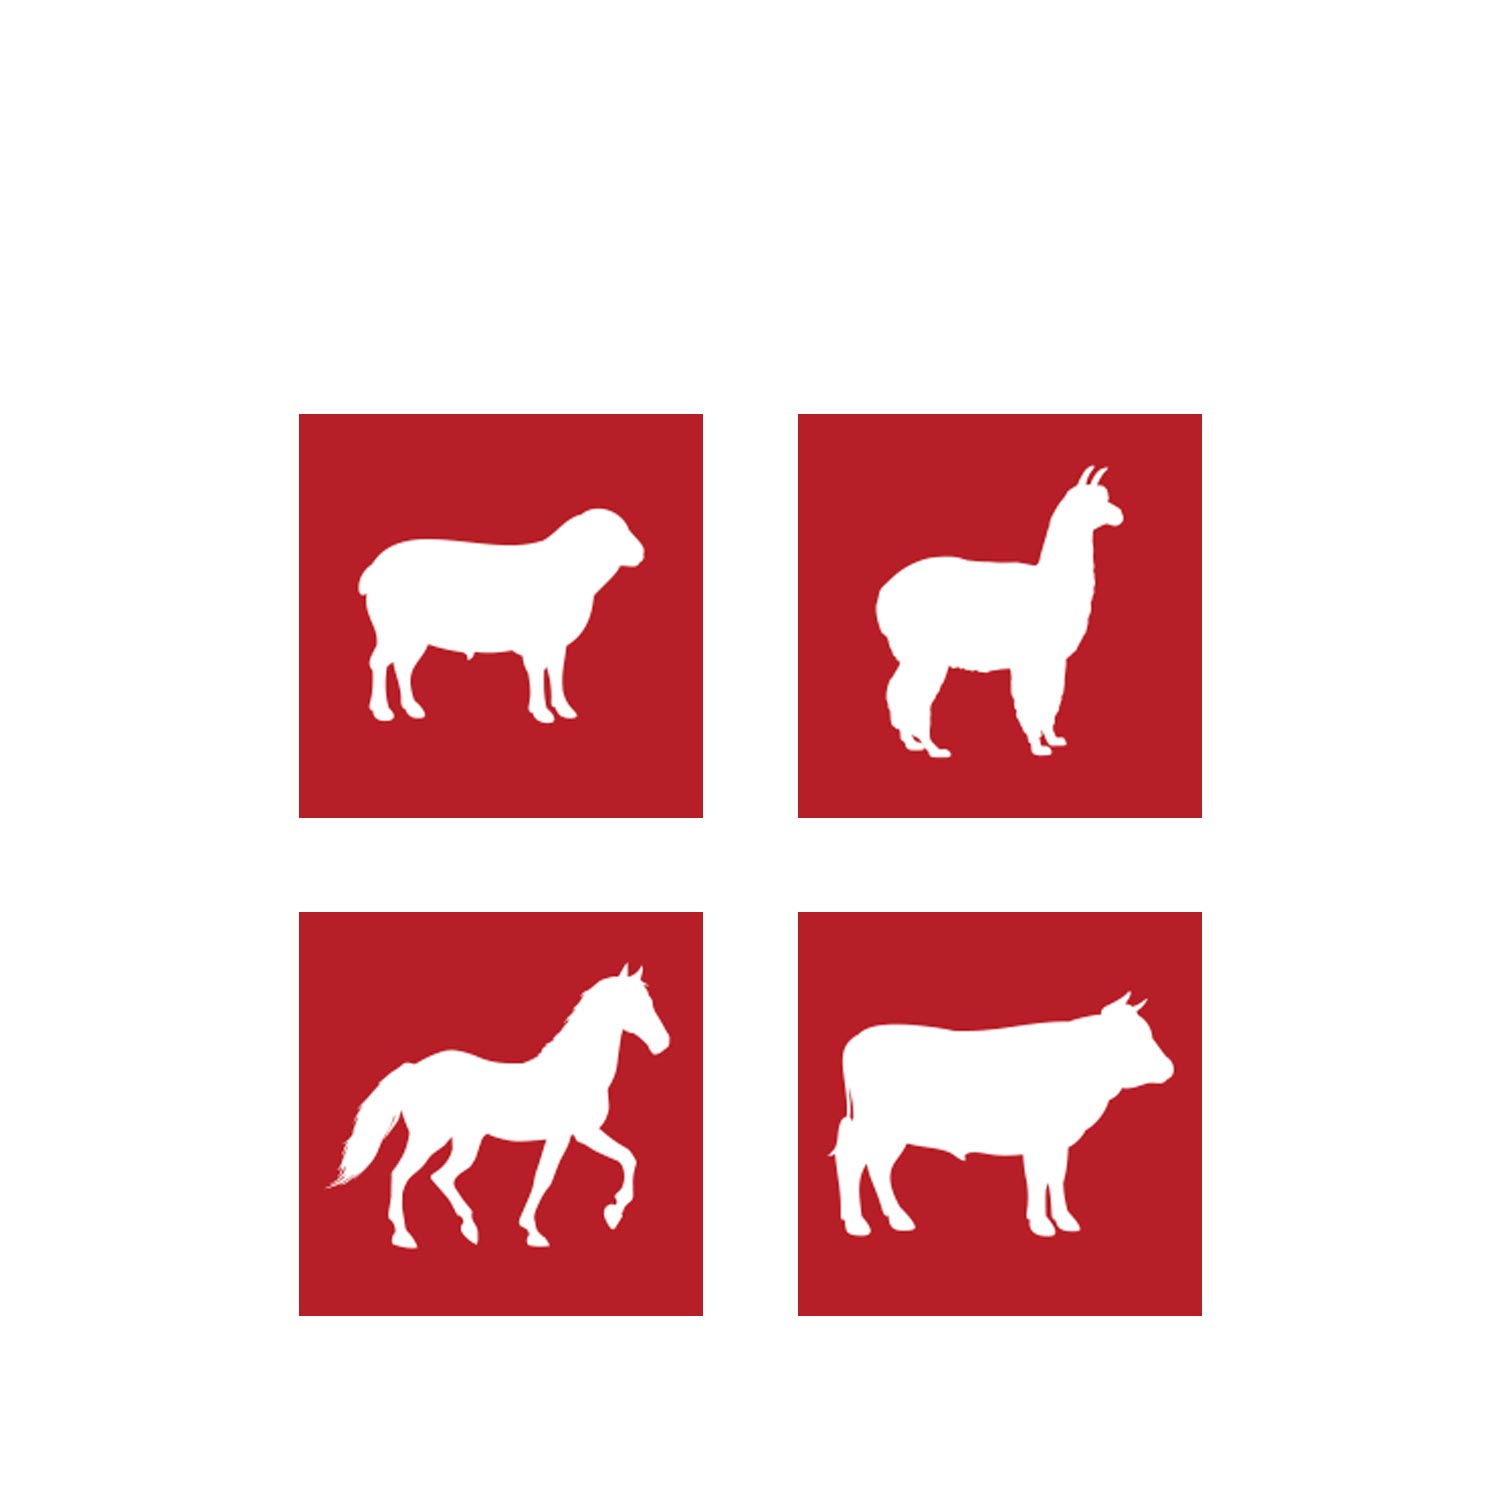 Animal icons designed for Lister Shearing by Mighty, branding agency Cheltenham